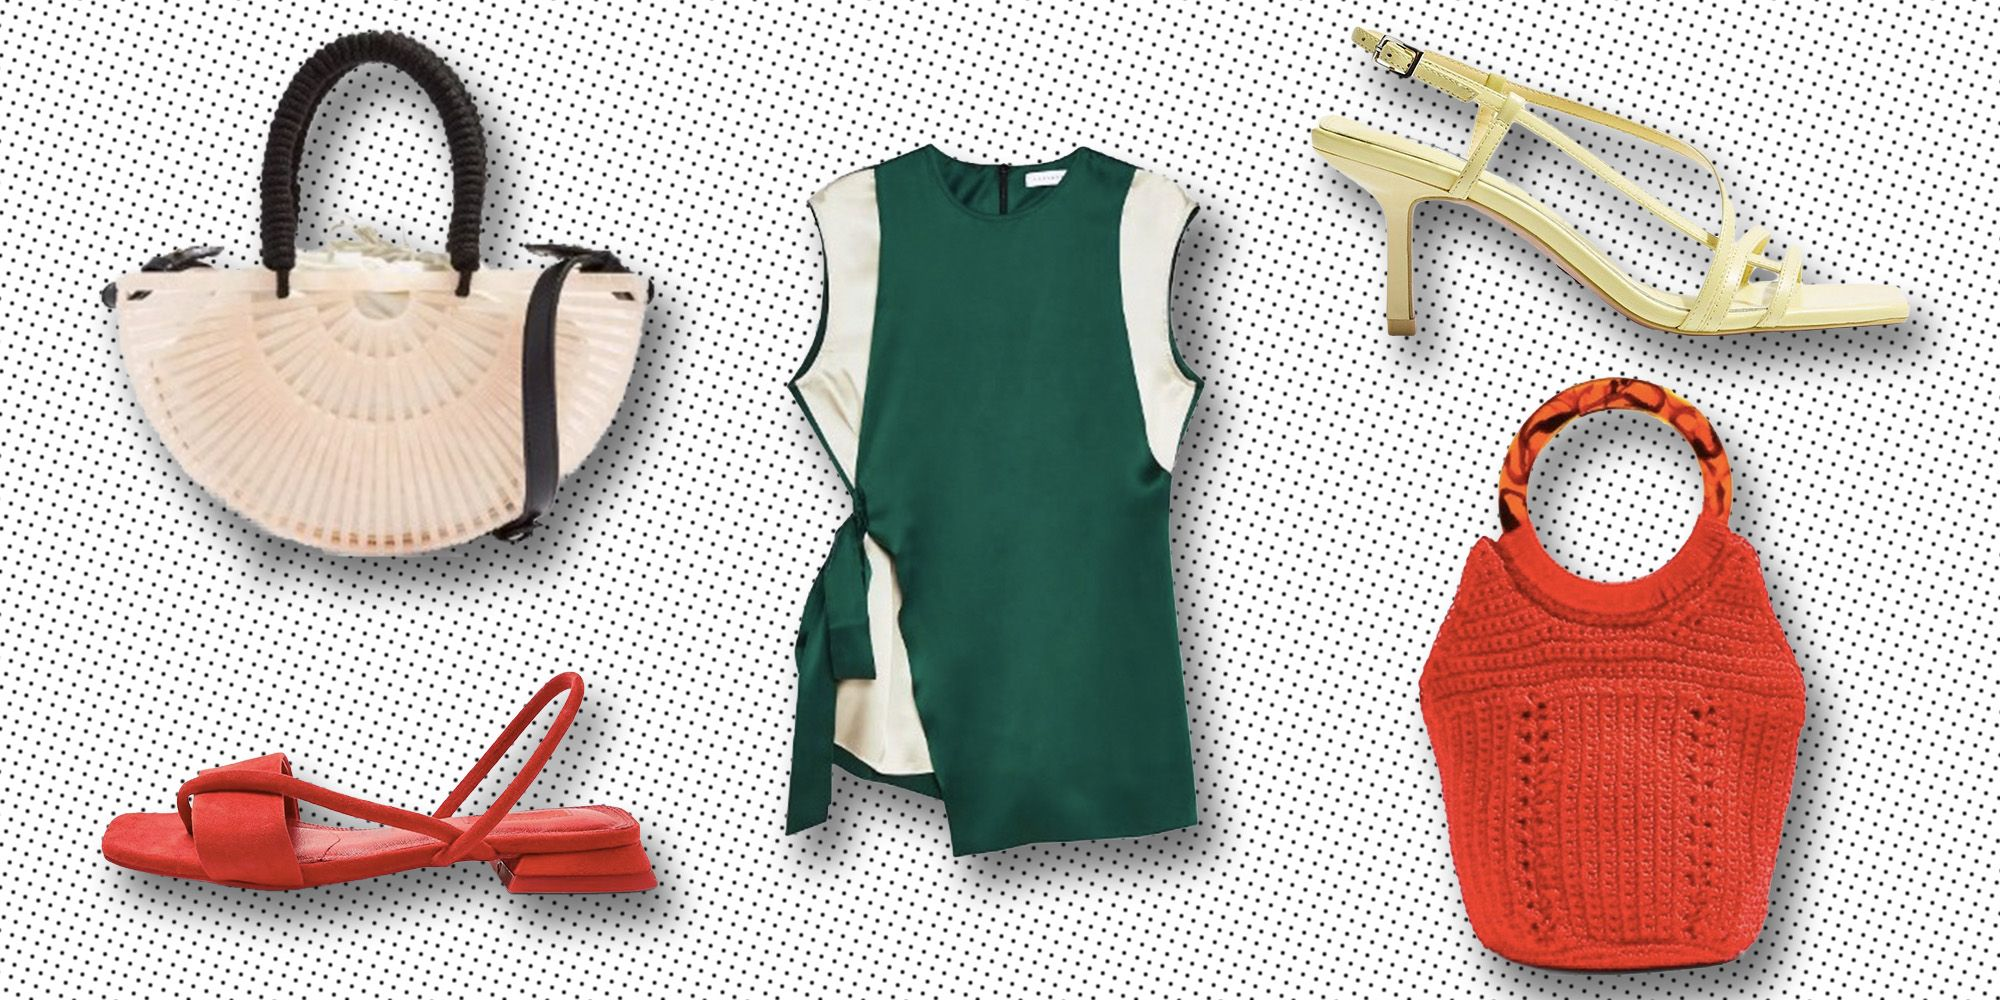 16 Seriously Great Items To Nab In The Topshop Summer Sale